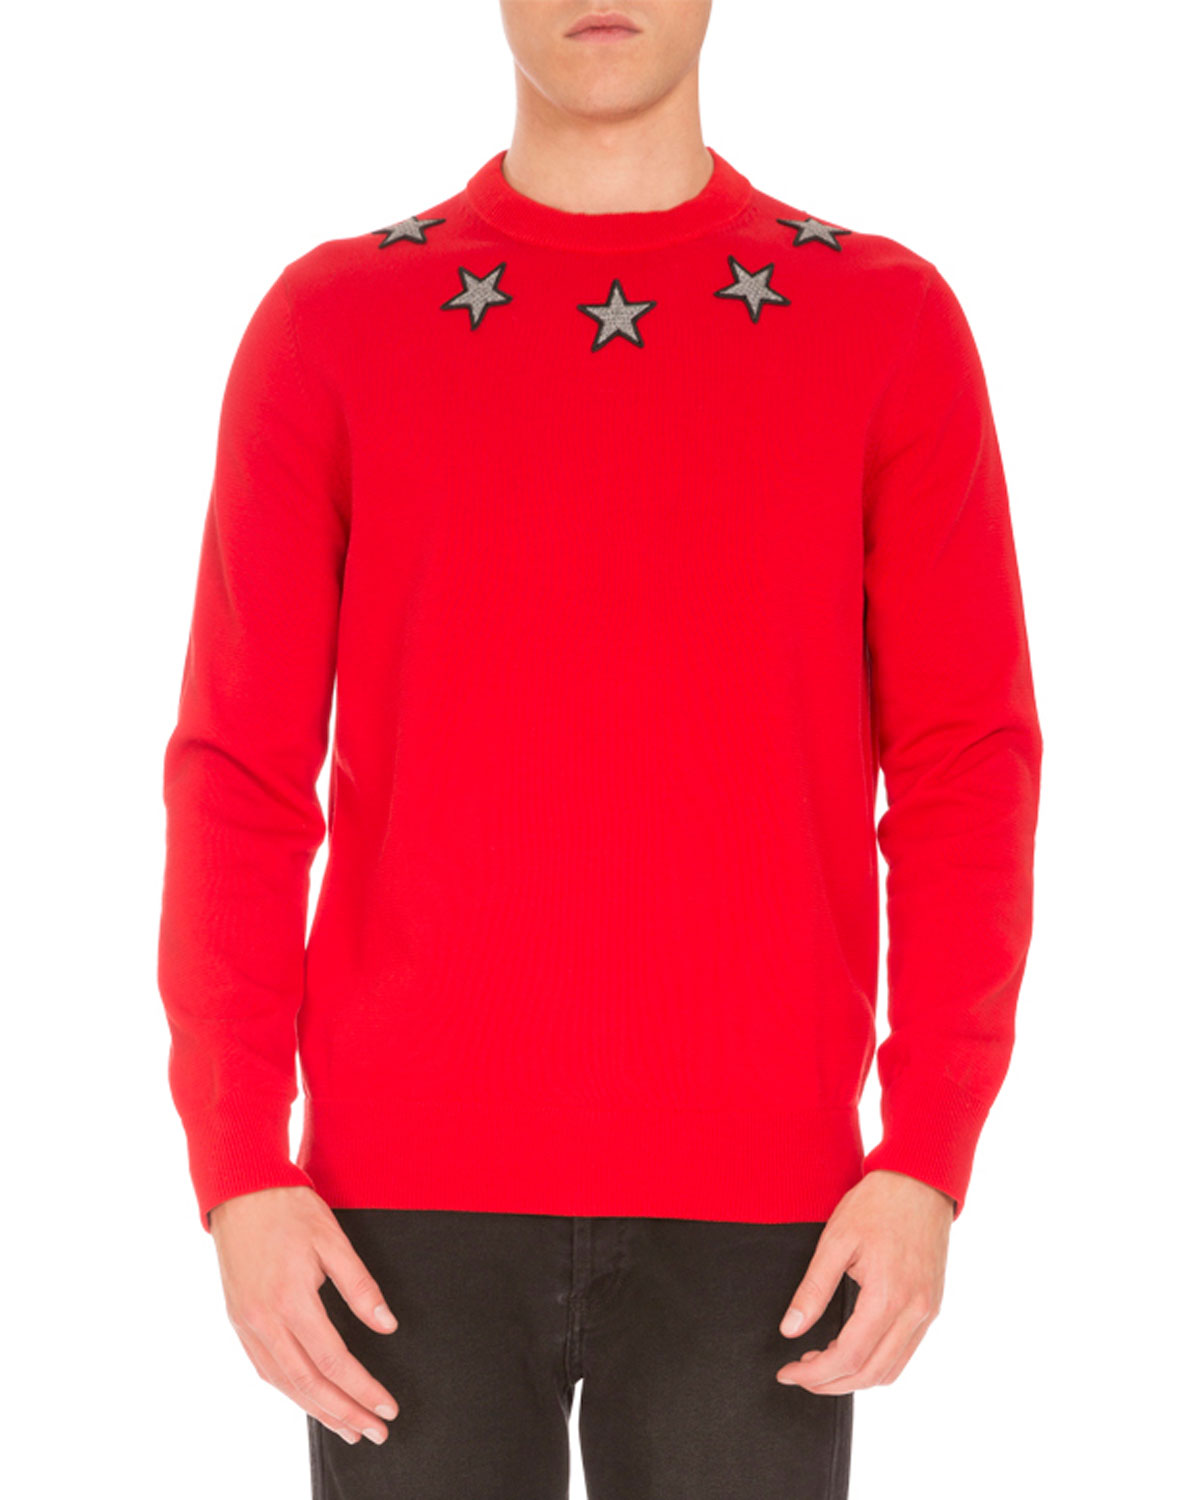 e71749d07c9f Givenchy Star-Embroidered Crewneck Sweater